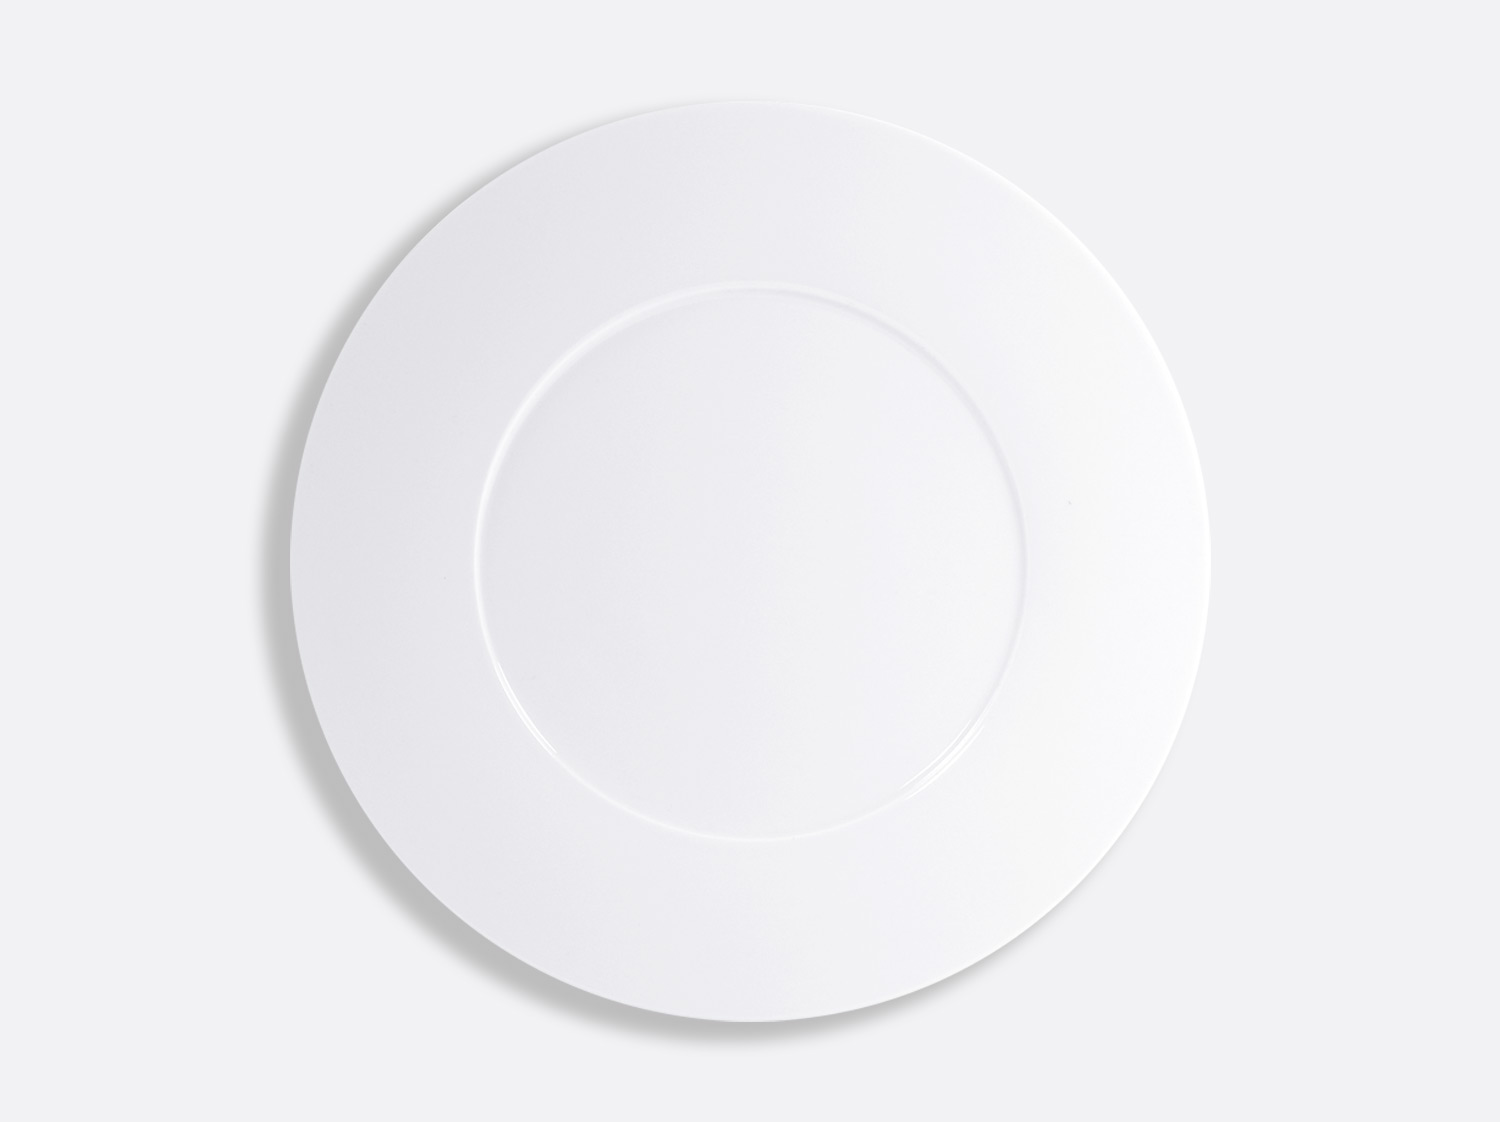 China Plate 29.5 cm of the collection Astre blanc | Bernardaud